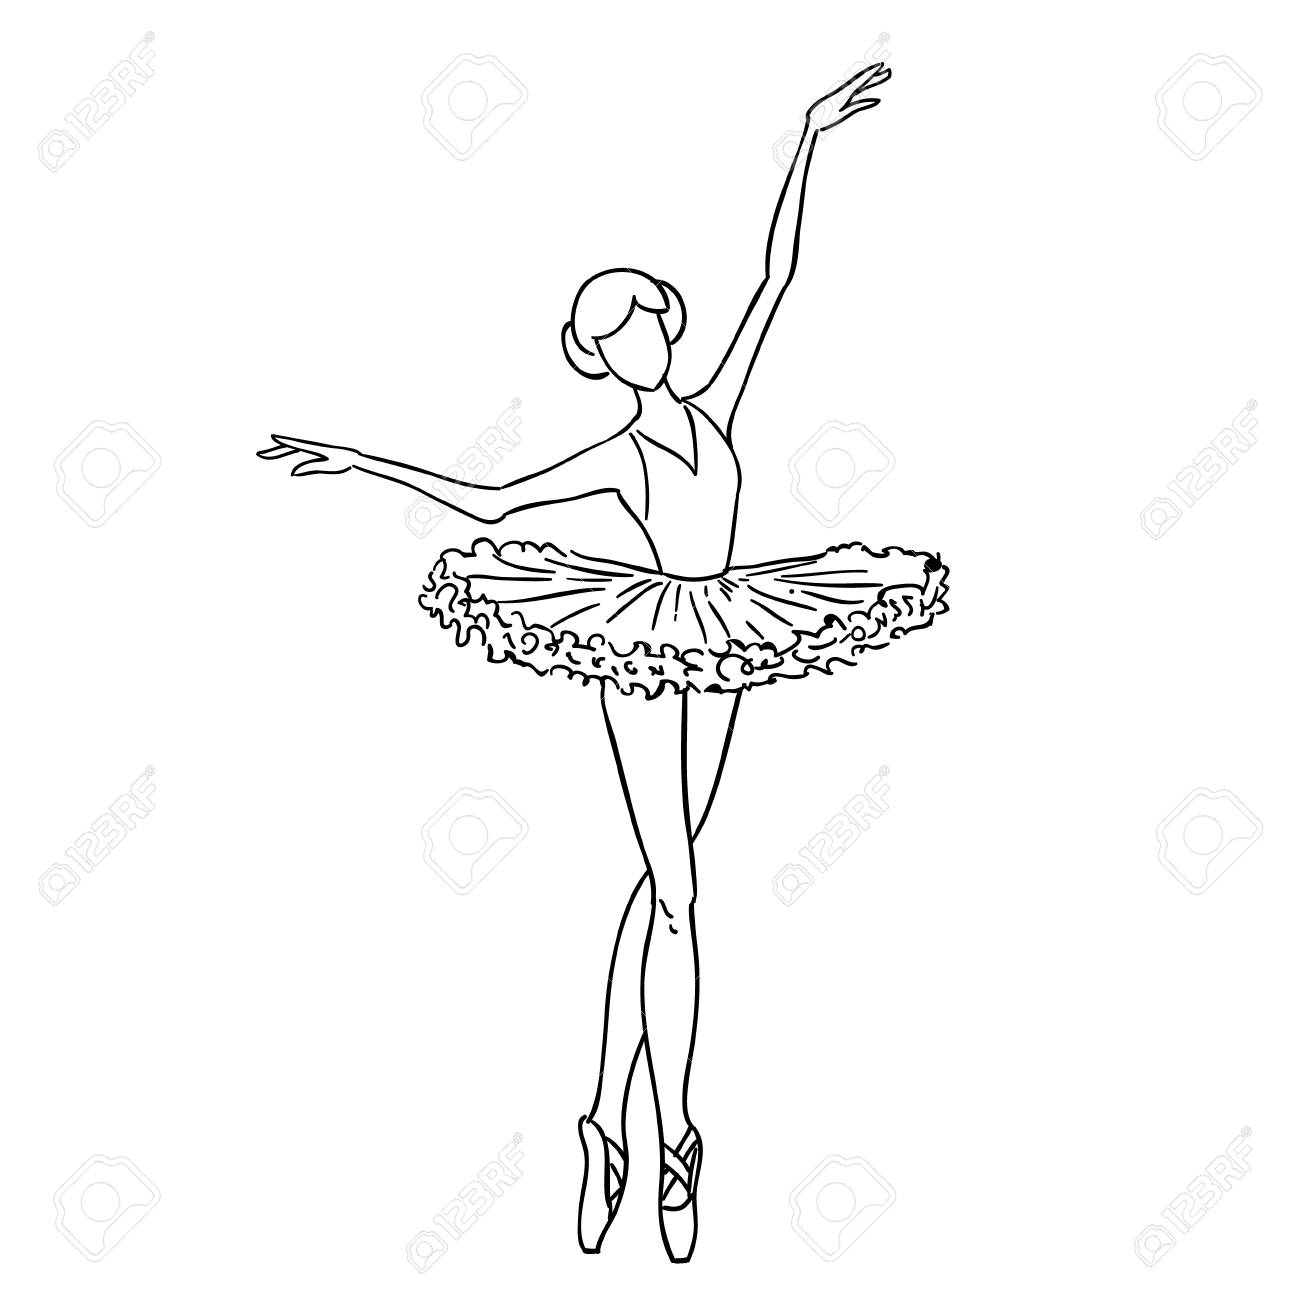 Ballerina Dancer Black And White Sketch Cartoon Doodle Royalty Free Cliparts Vectors And Stock Illustration Image 94768122